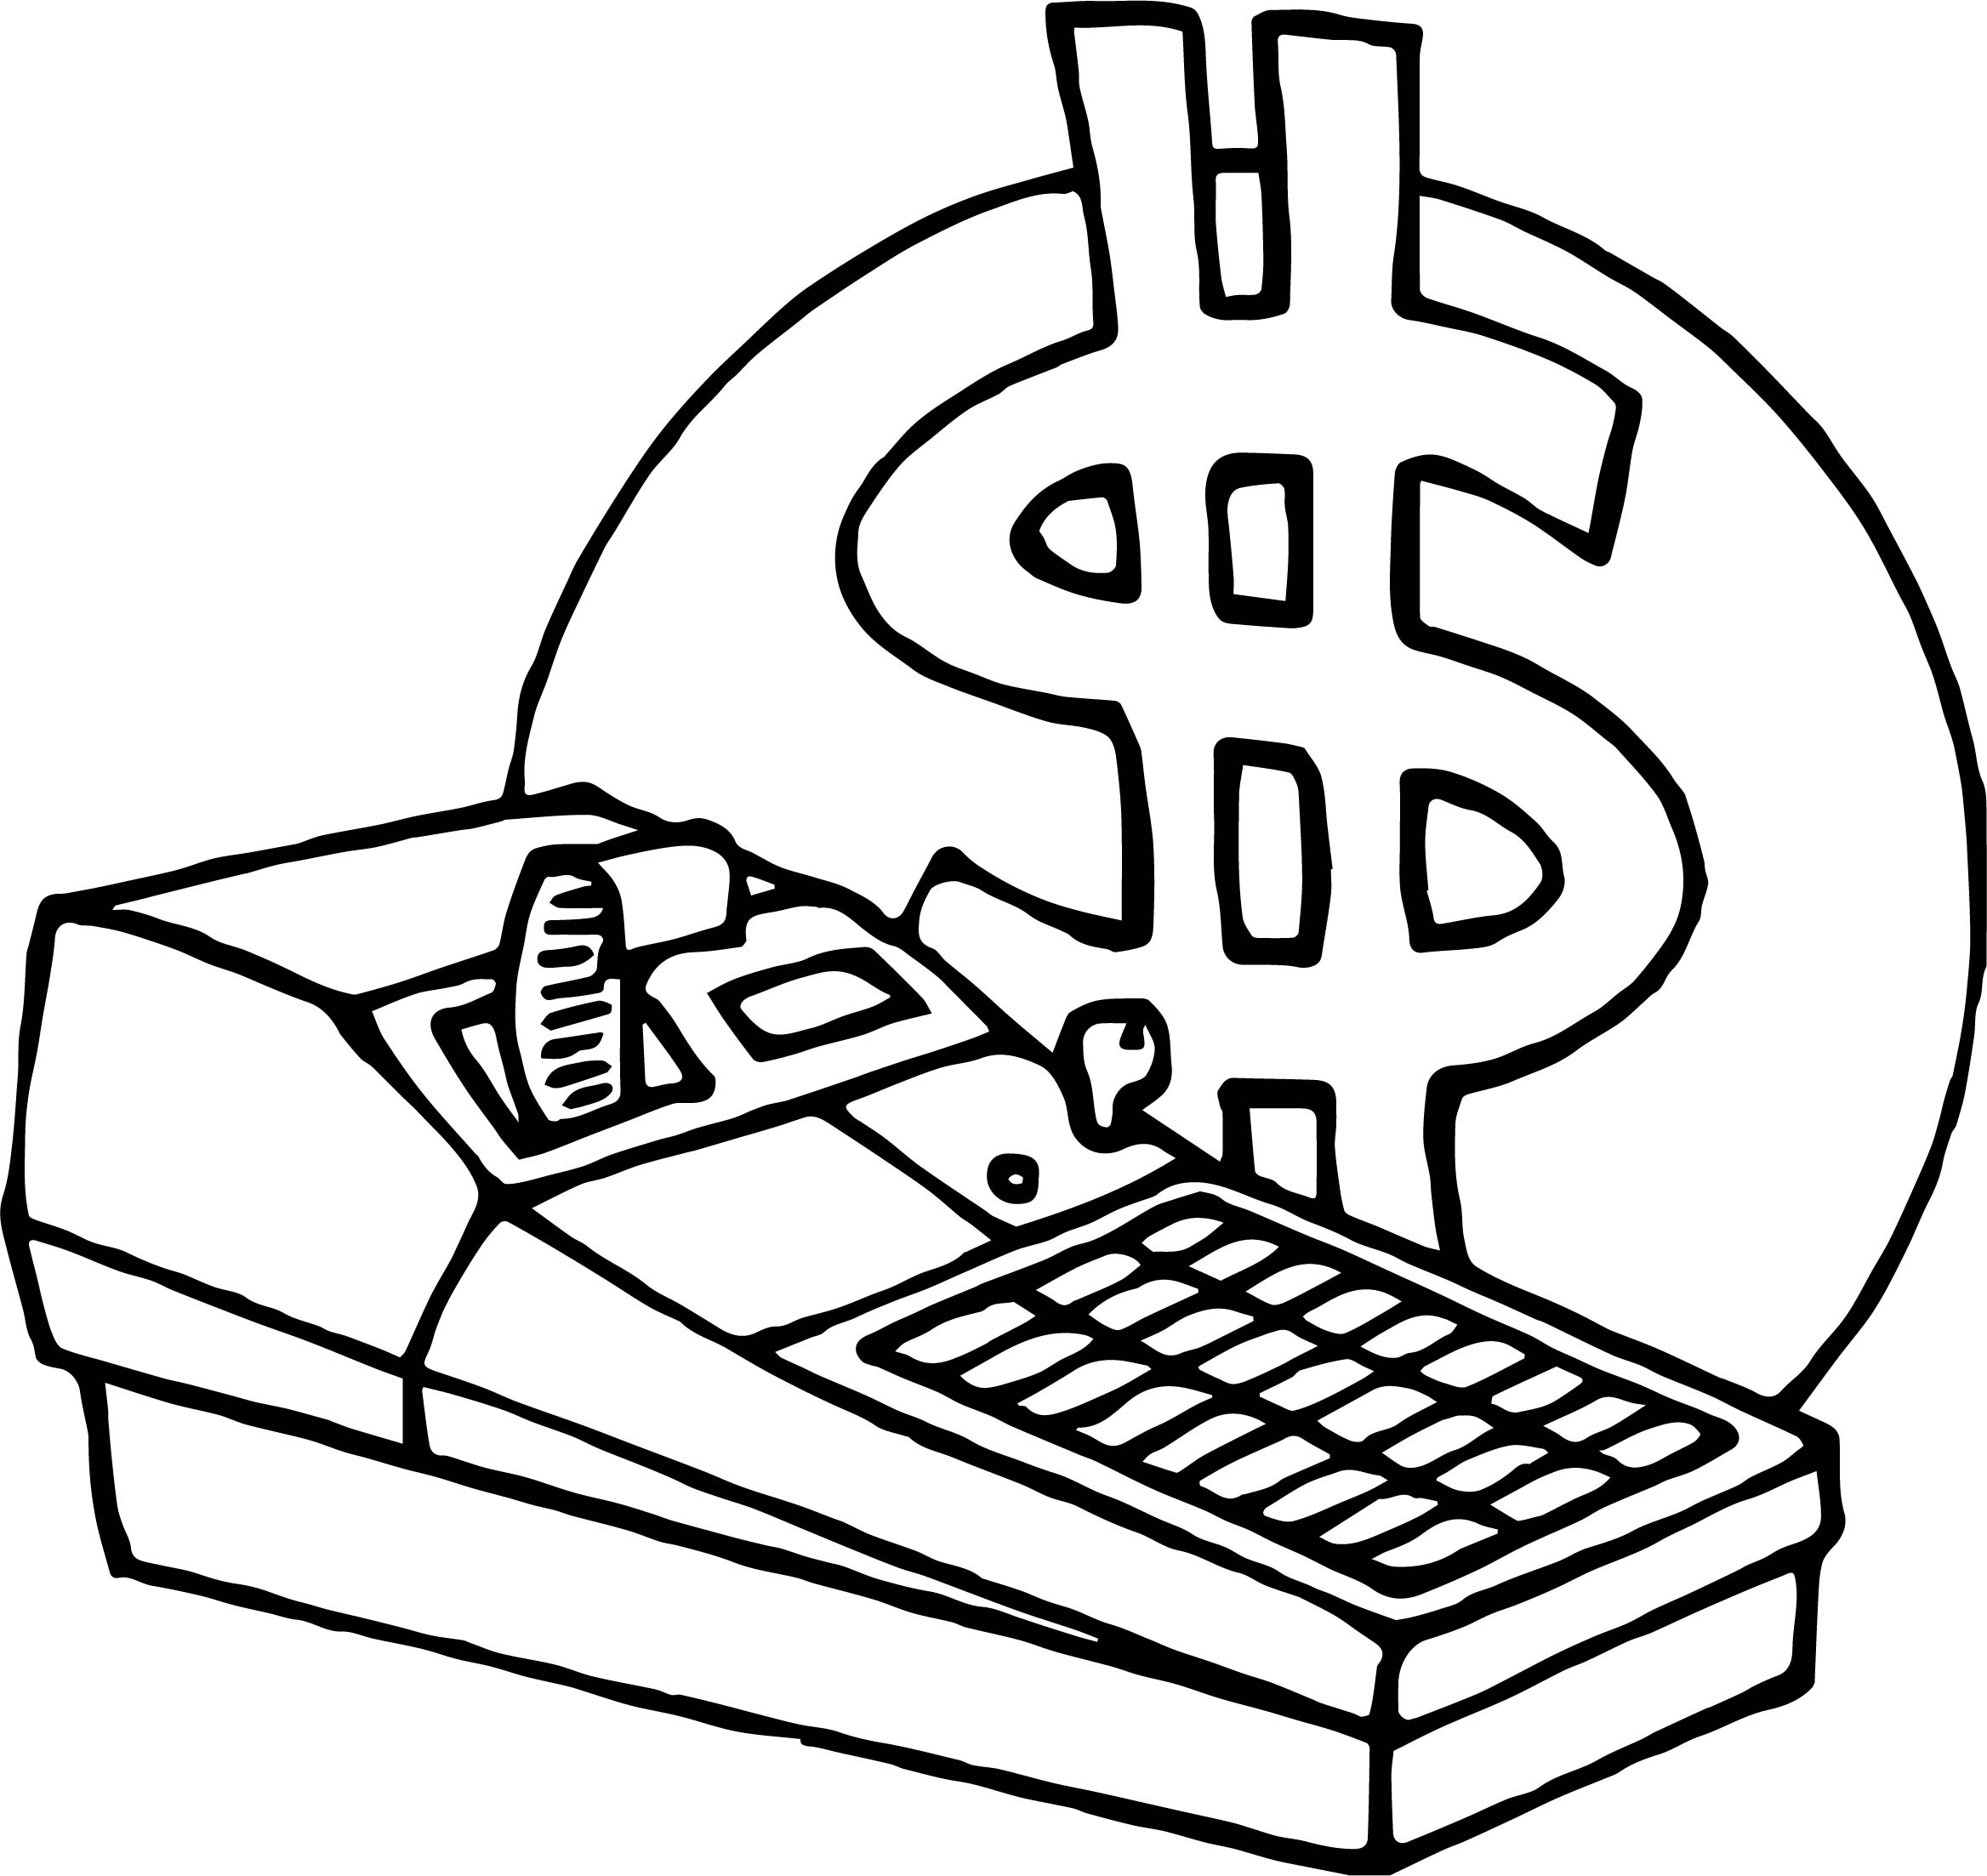 Lunch Money Coloring Page